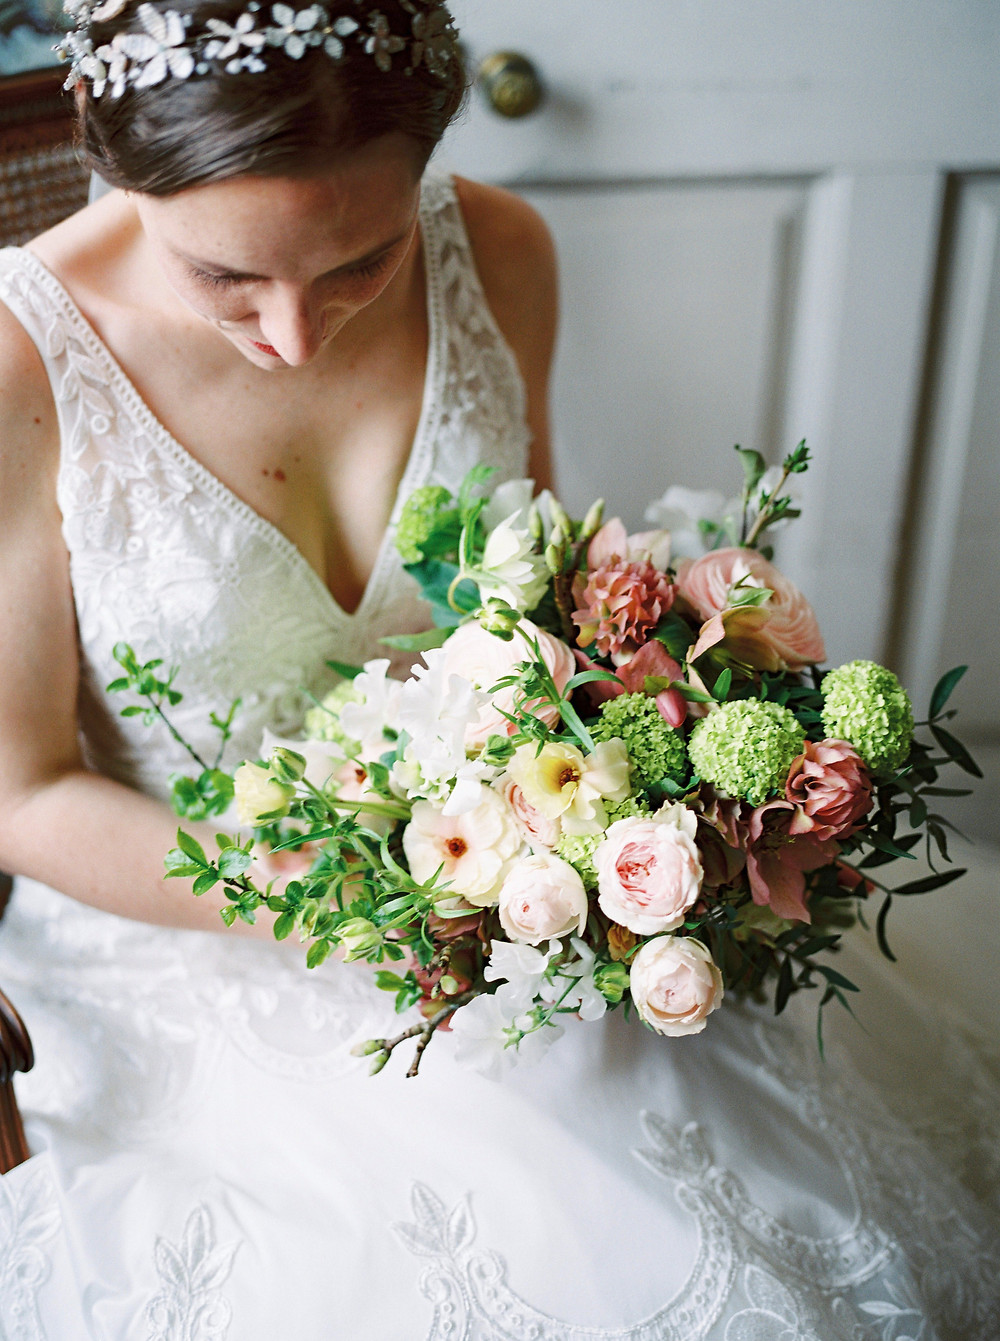 St St Giles Wedding - Florist - Martha and the Meadow